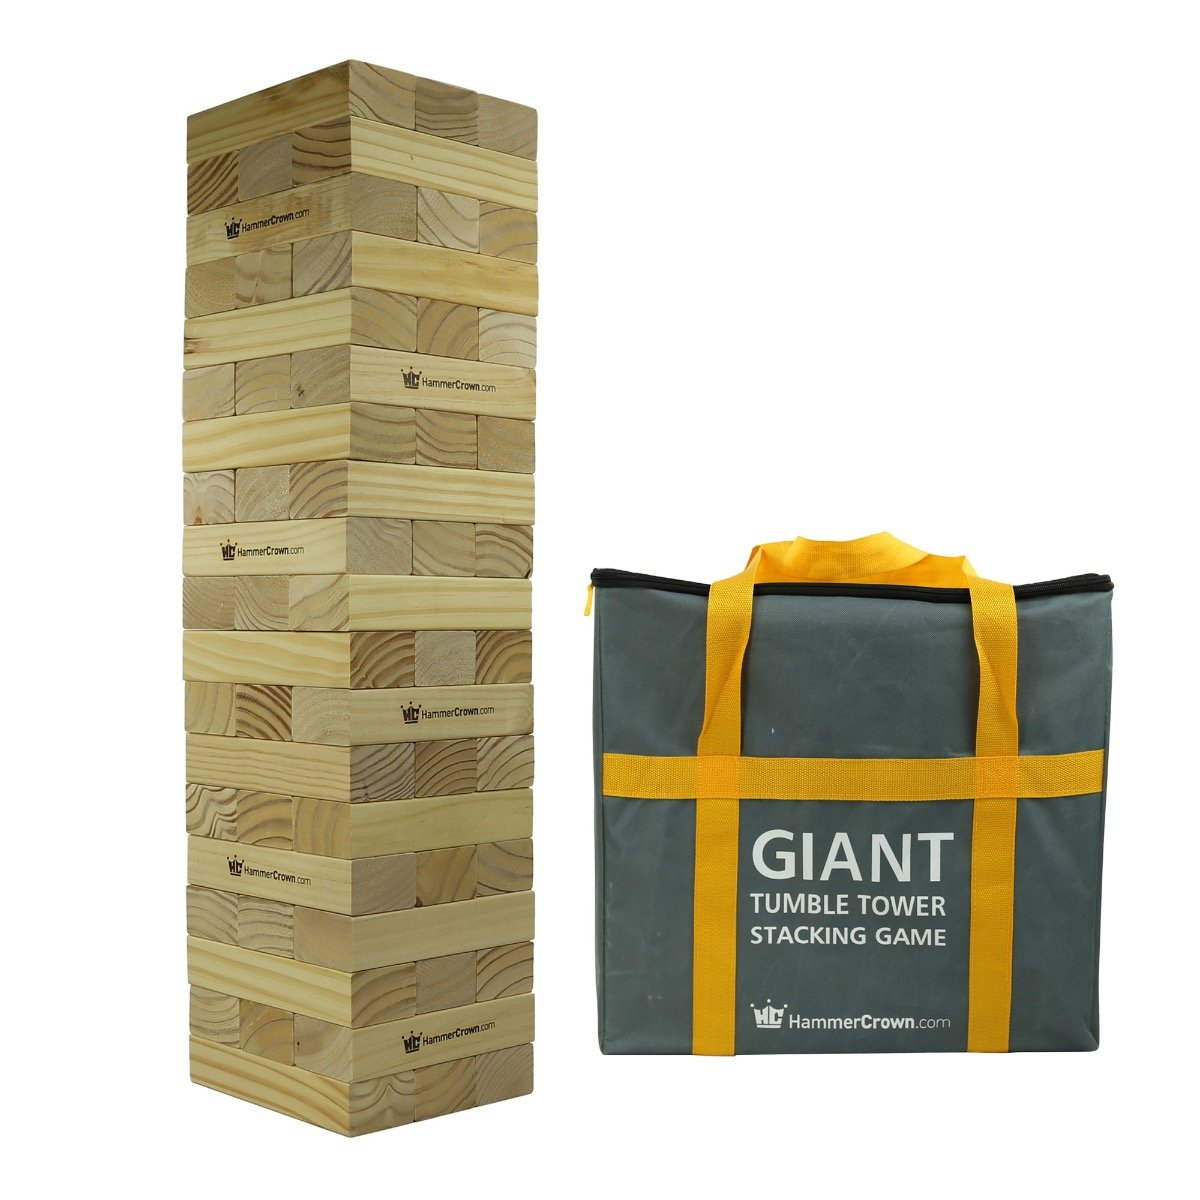 Hammer Crown Giant Tumble Tower; with FREE bonus block bottle opener by Hammer Crown